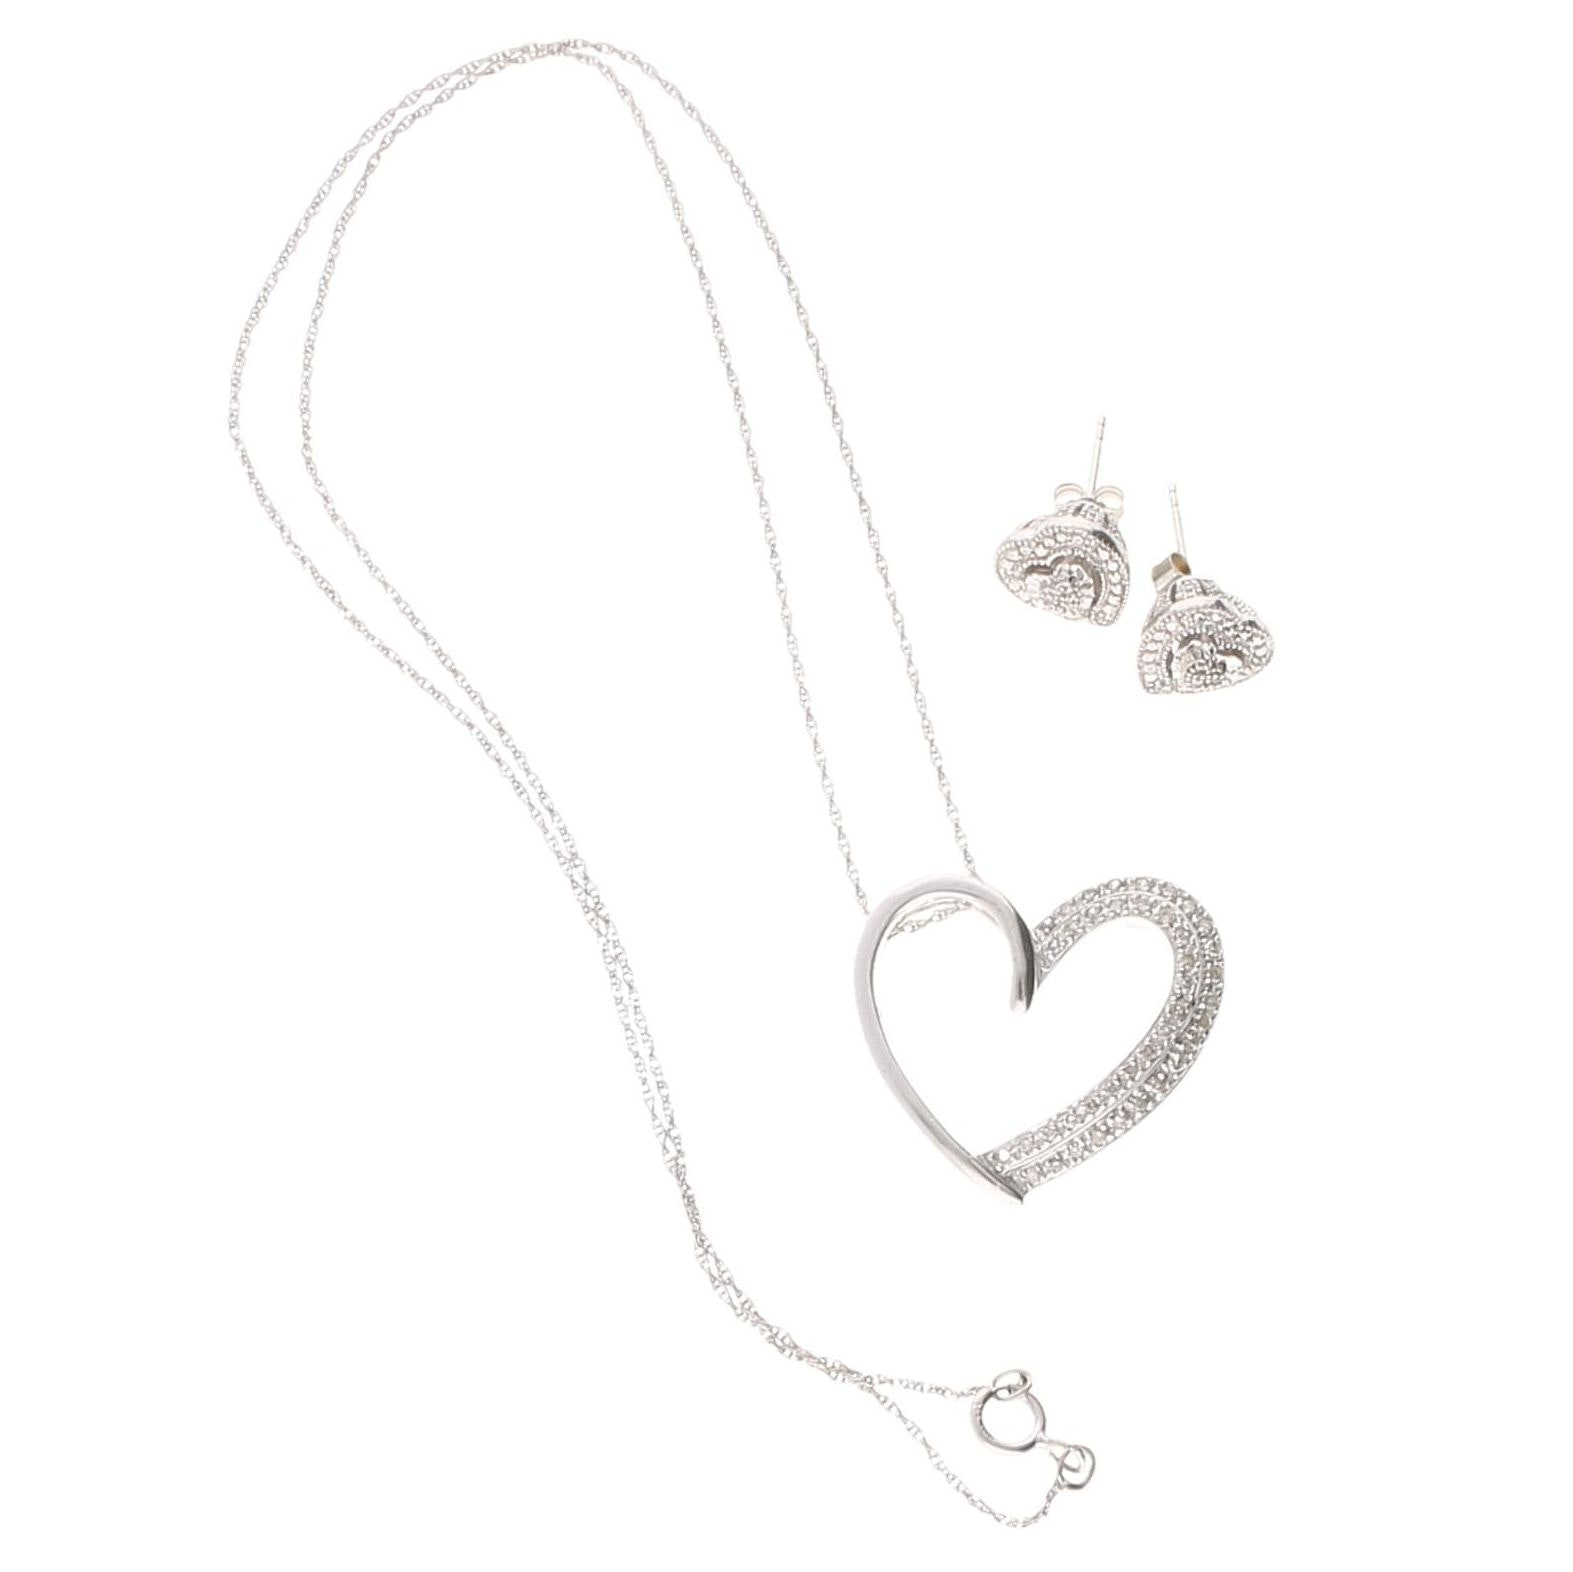 Sterling Silver and Diamond Necklace and Earrings